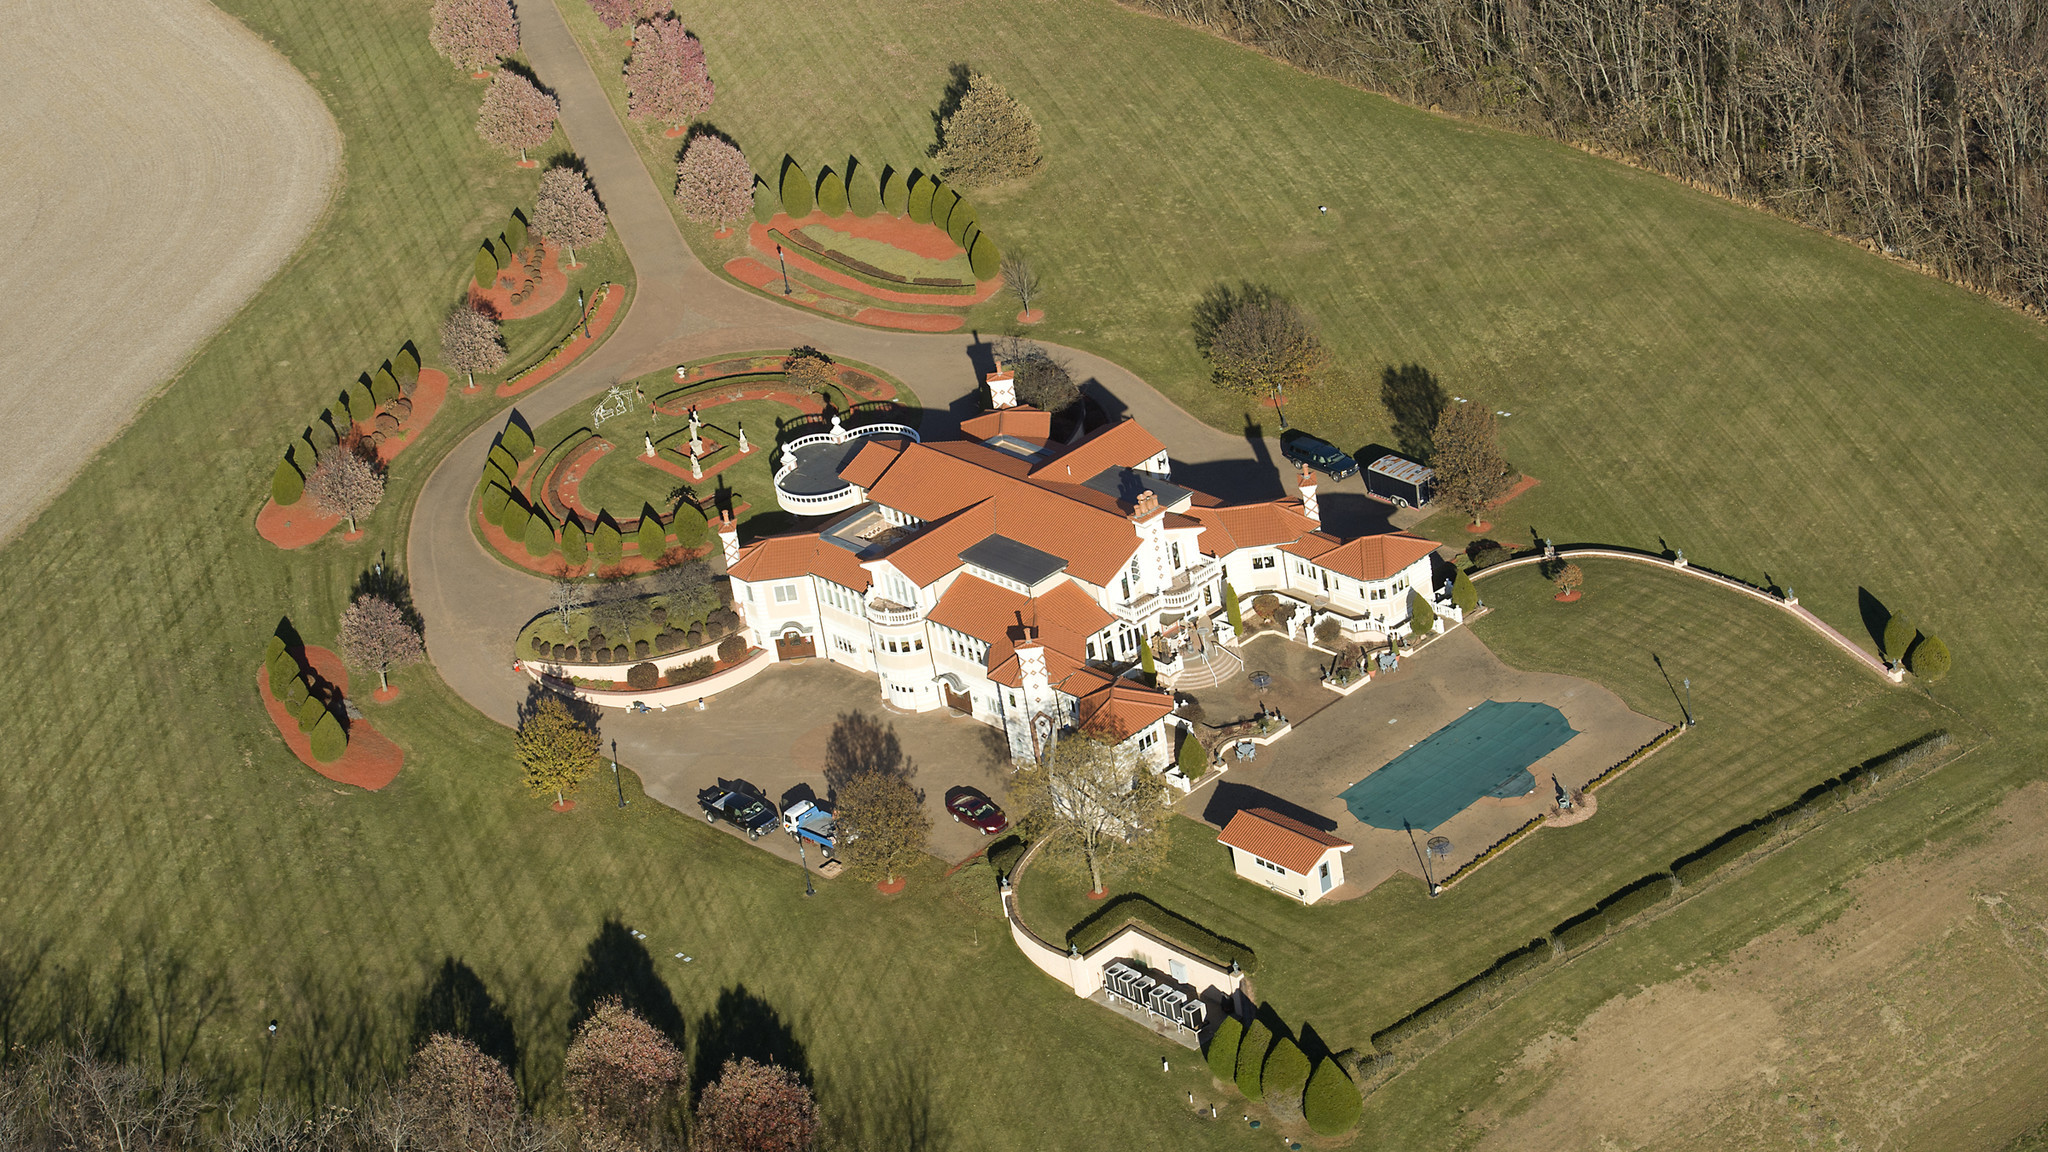 Pennsylvania law allows owners of large homes on sprawling estates to reap lower taxes